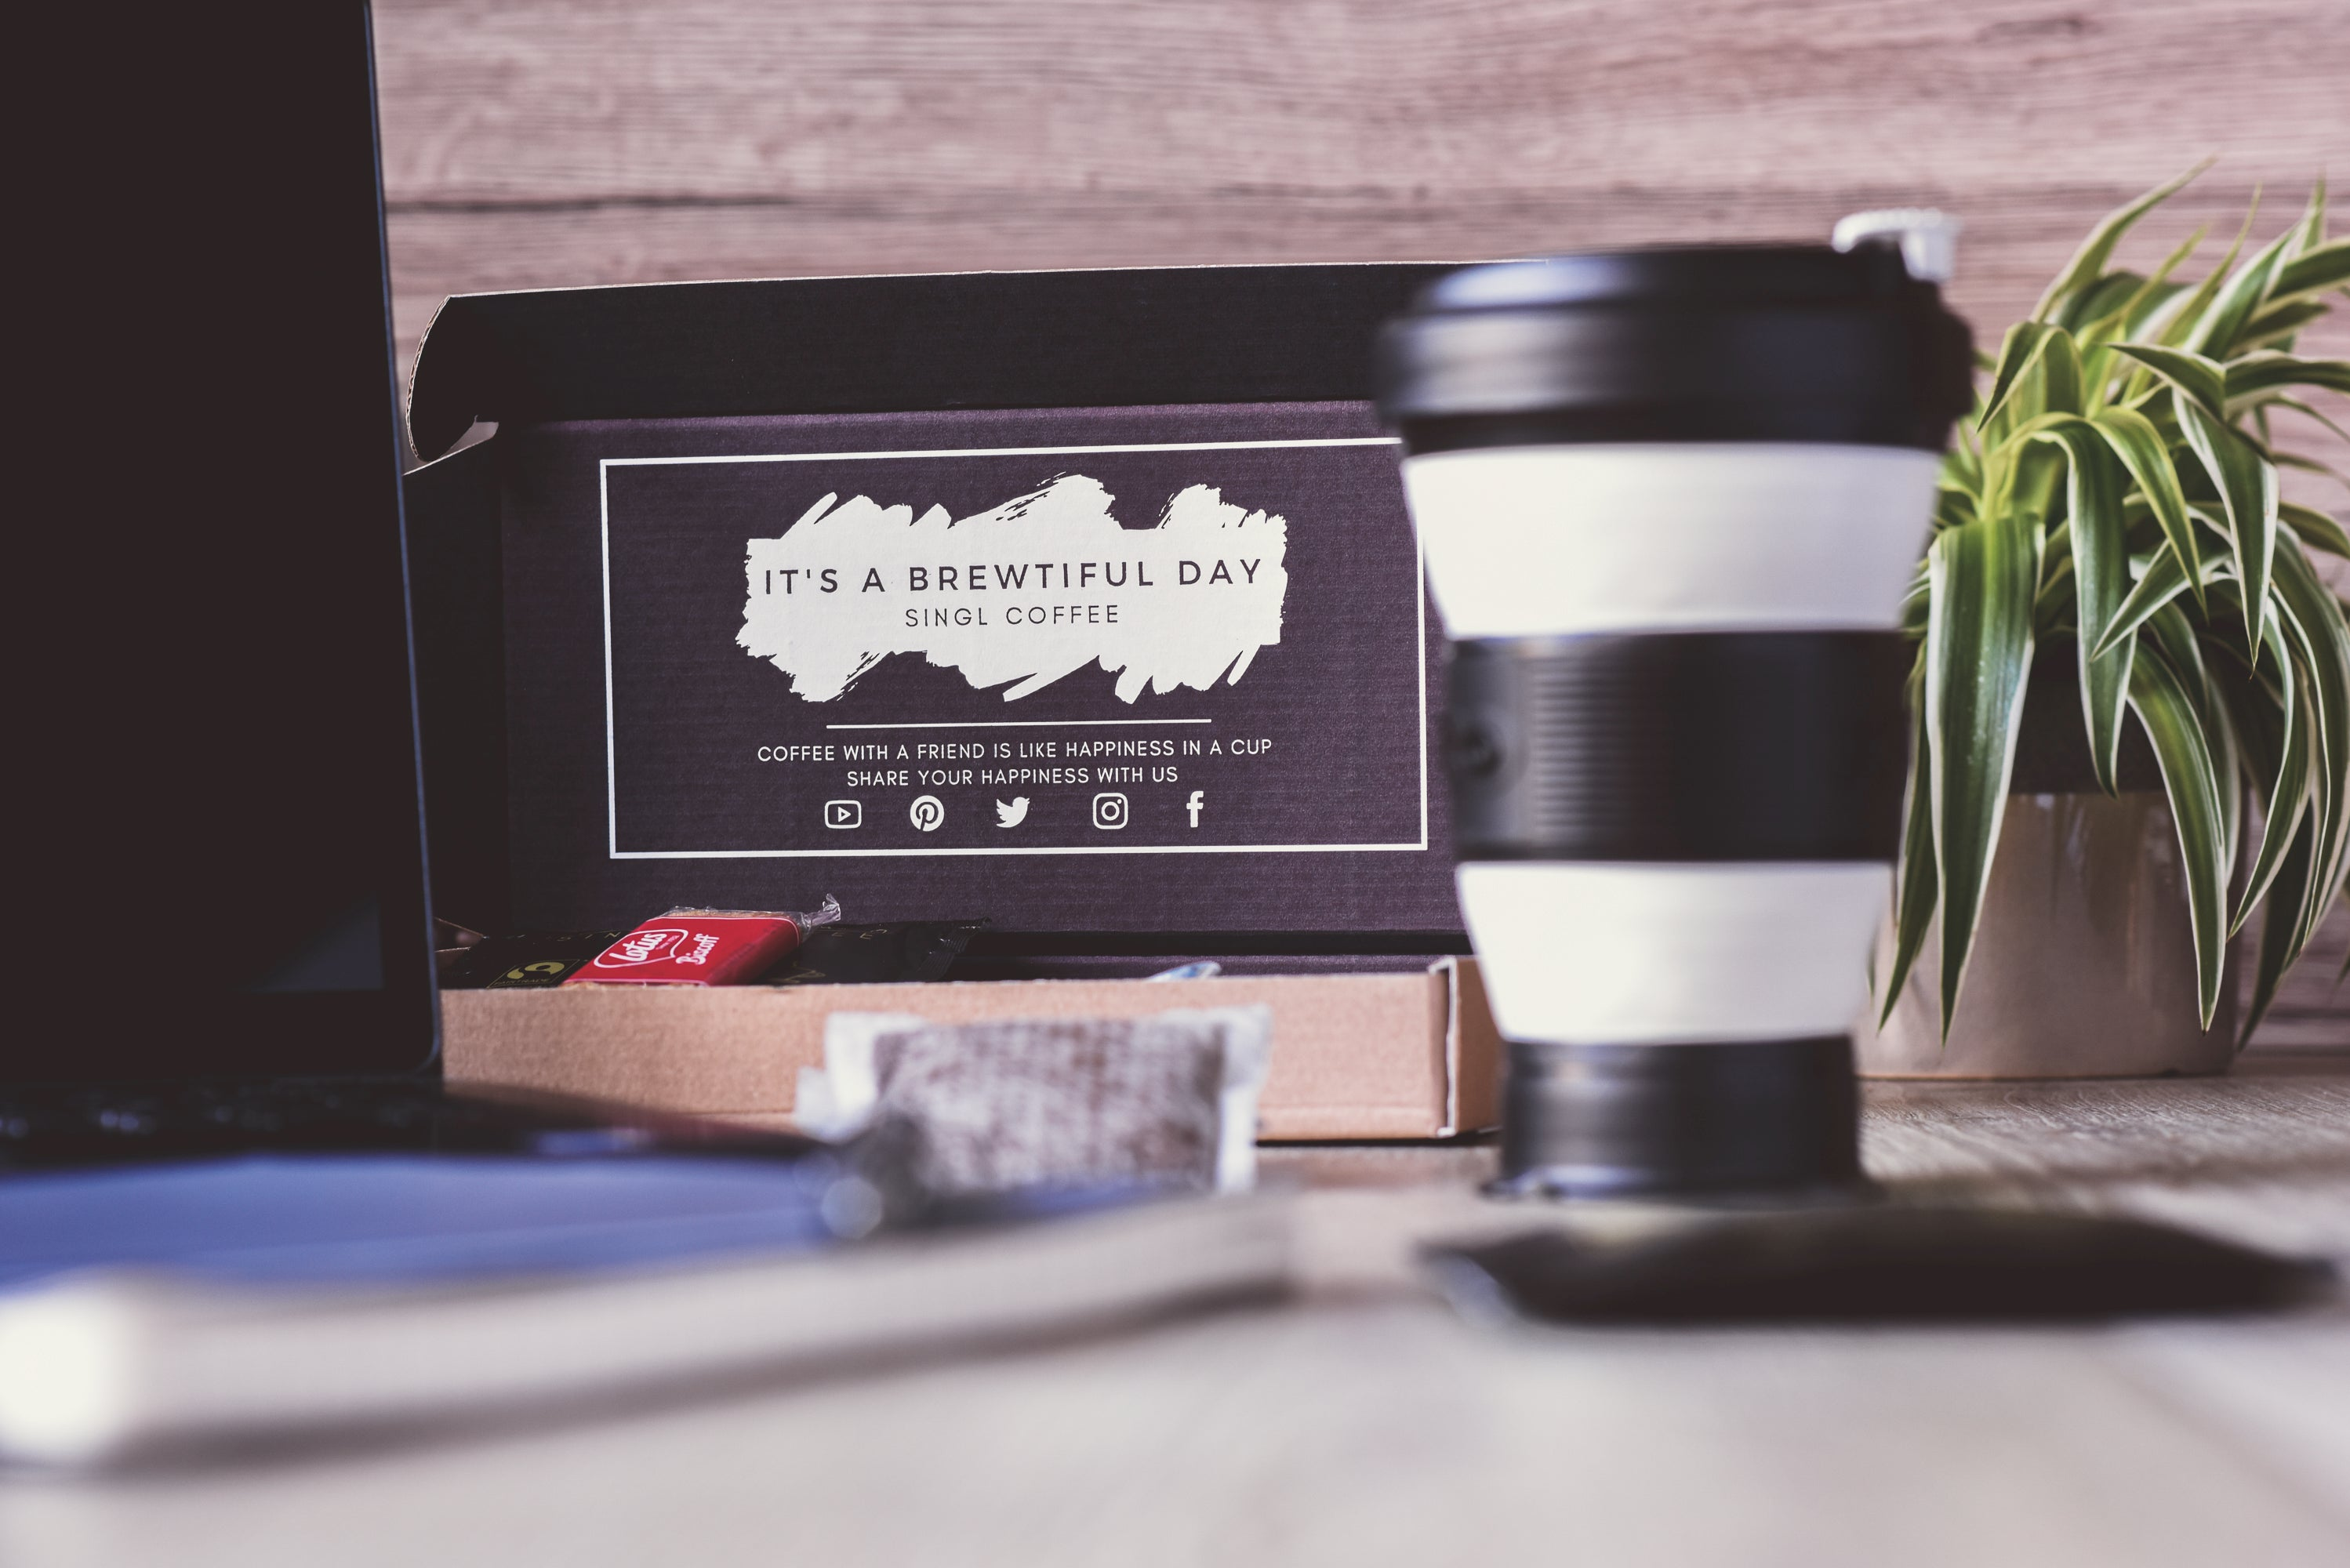 blackberry Pokito cup and singl coffee box